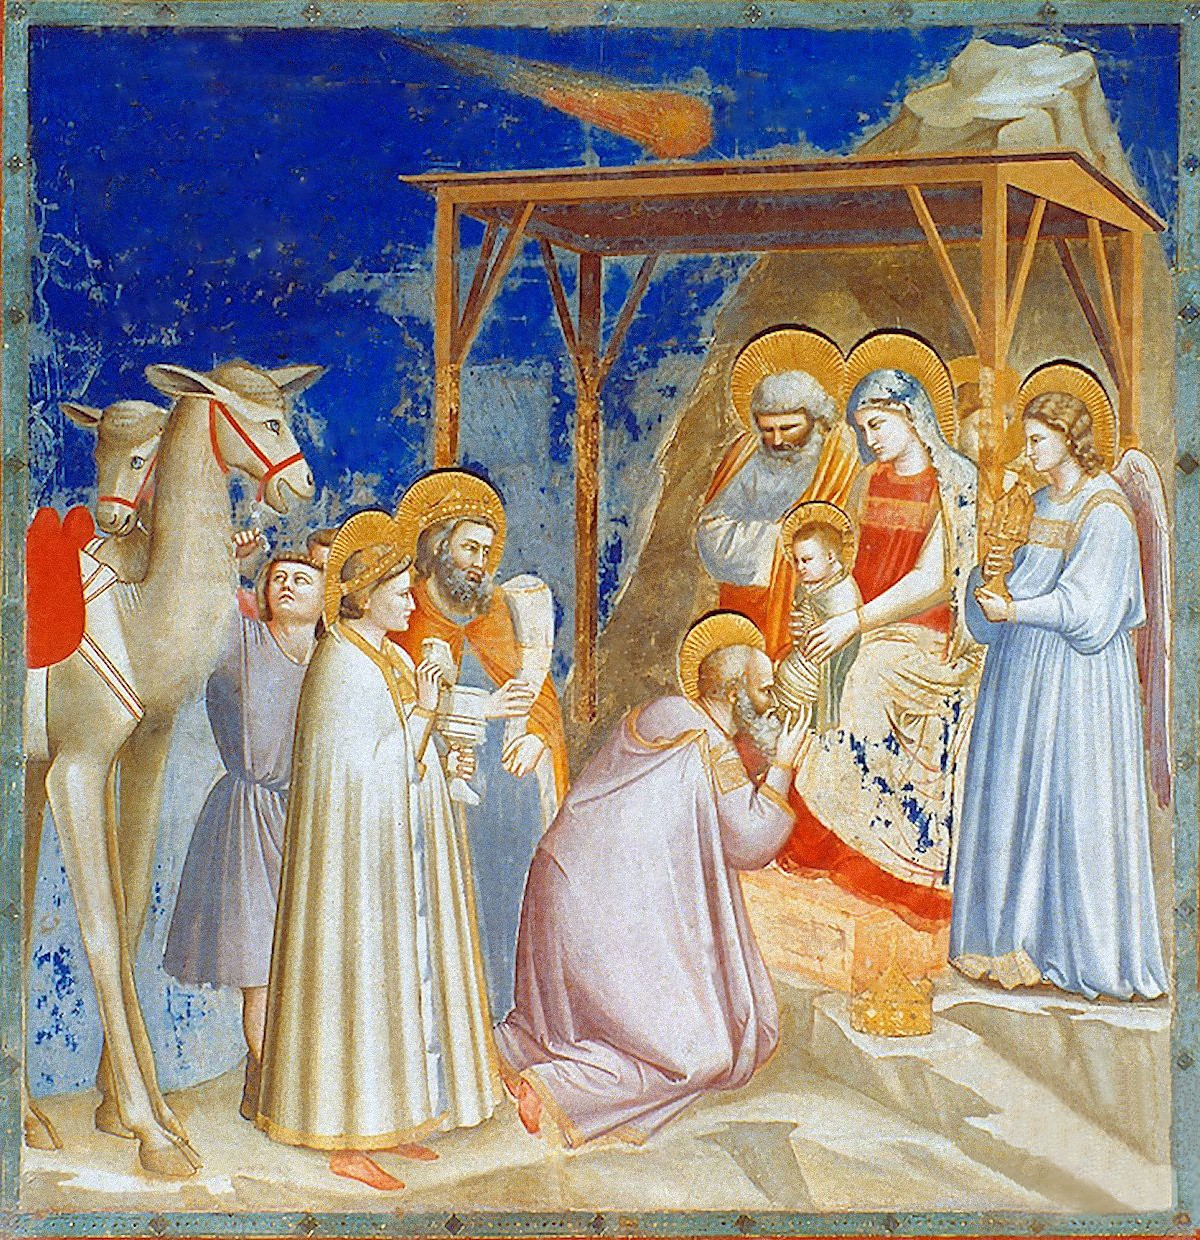 01-giotto-di-bondone-the-adoration-of-the-magi-cappella-scrovegni-a-padova-padova-italy-13051.jpg